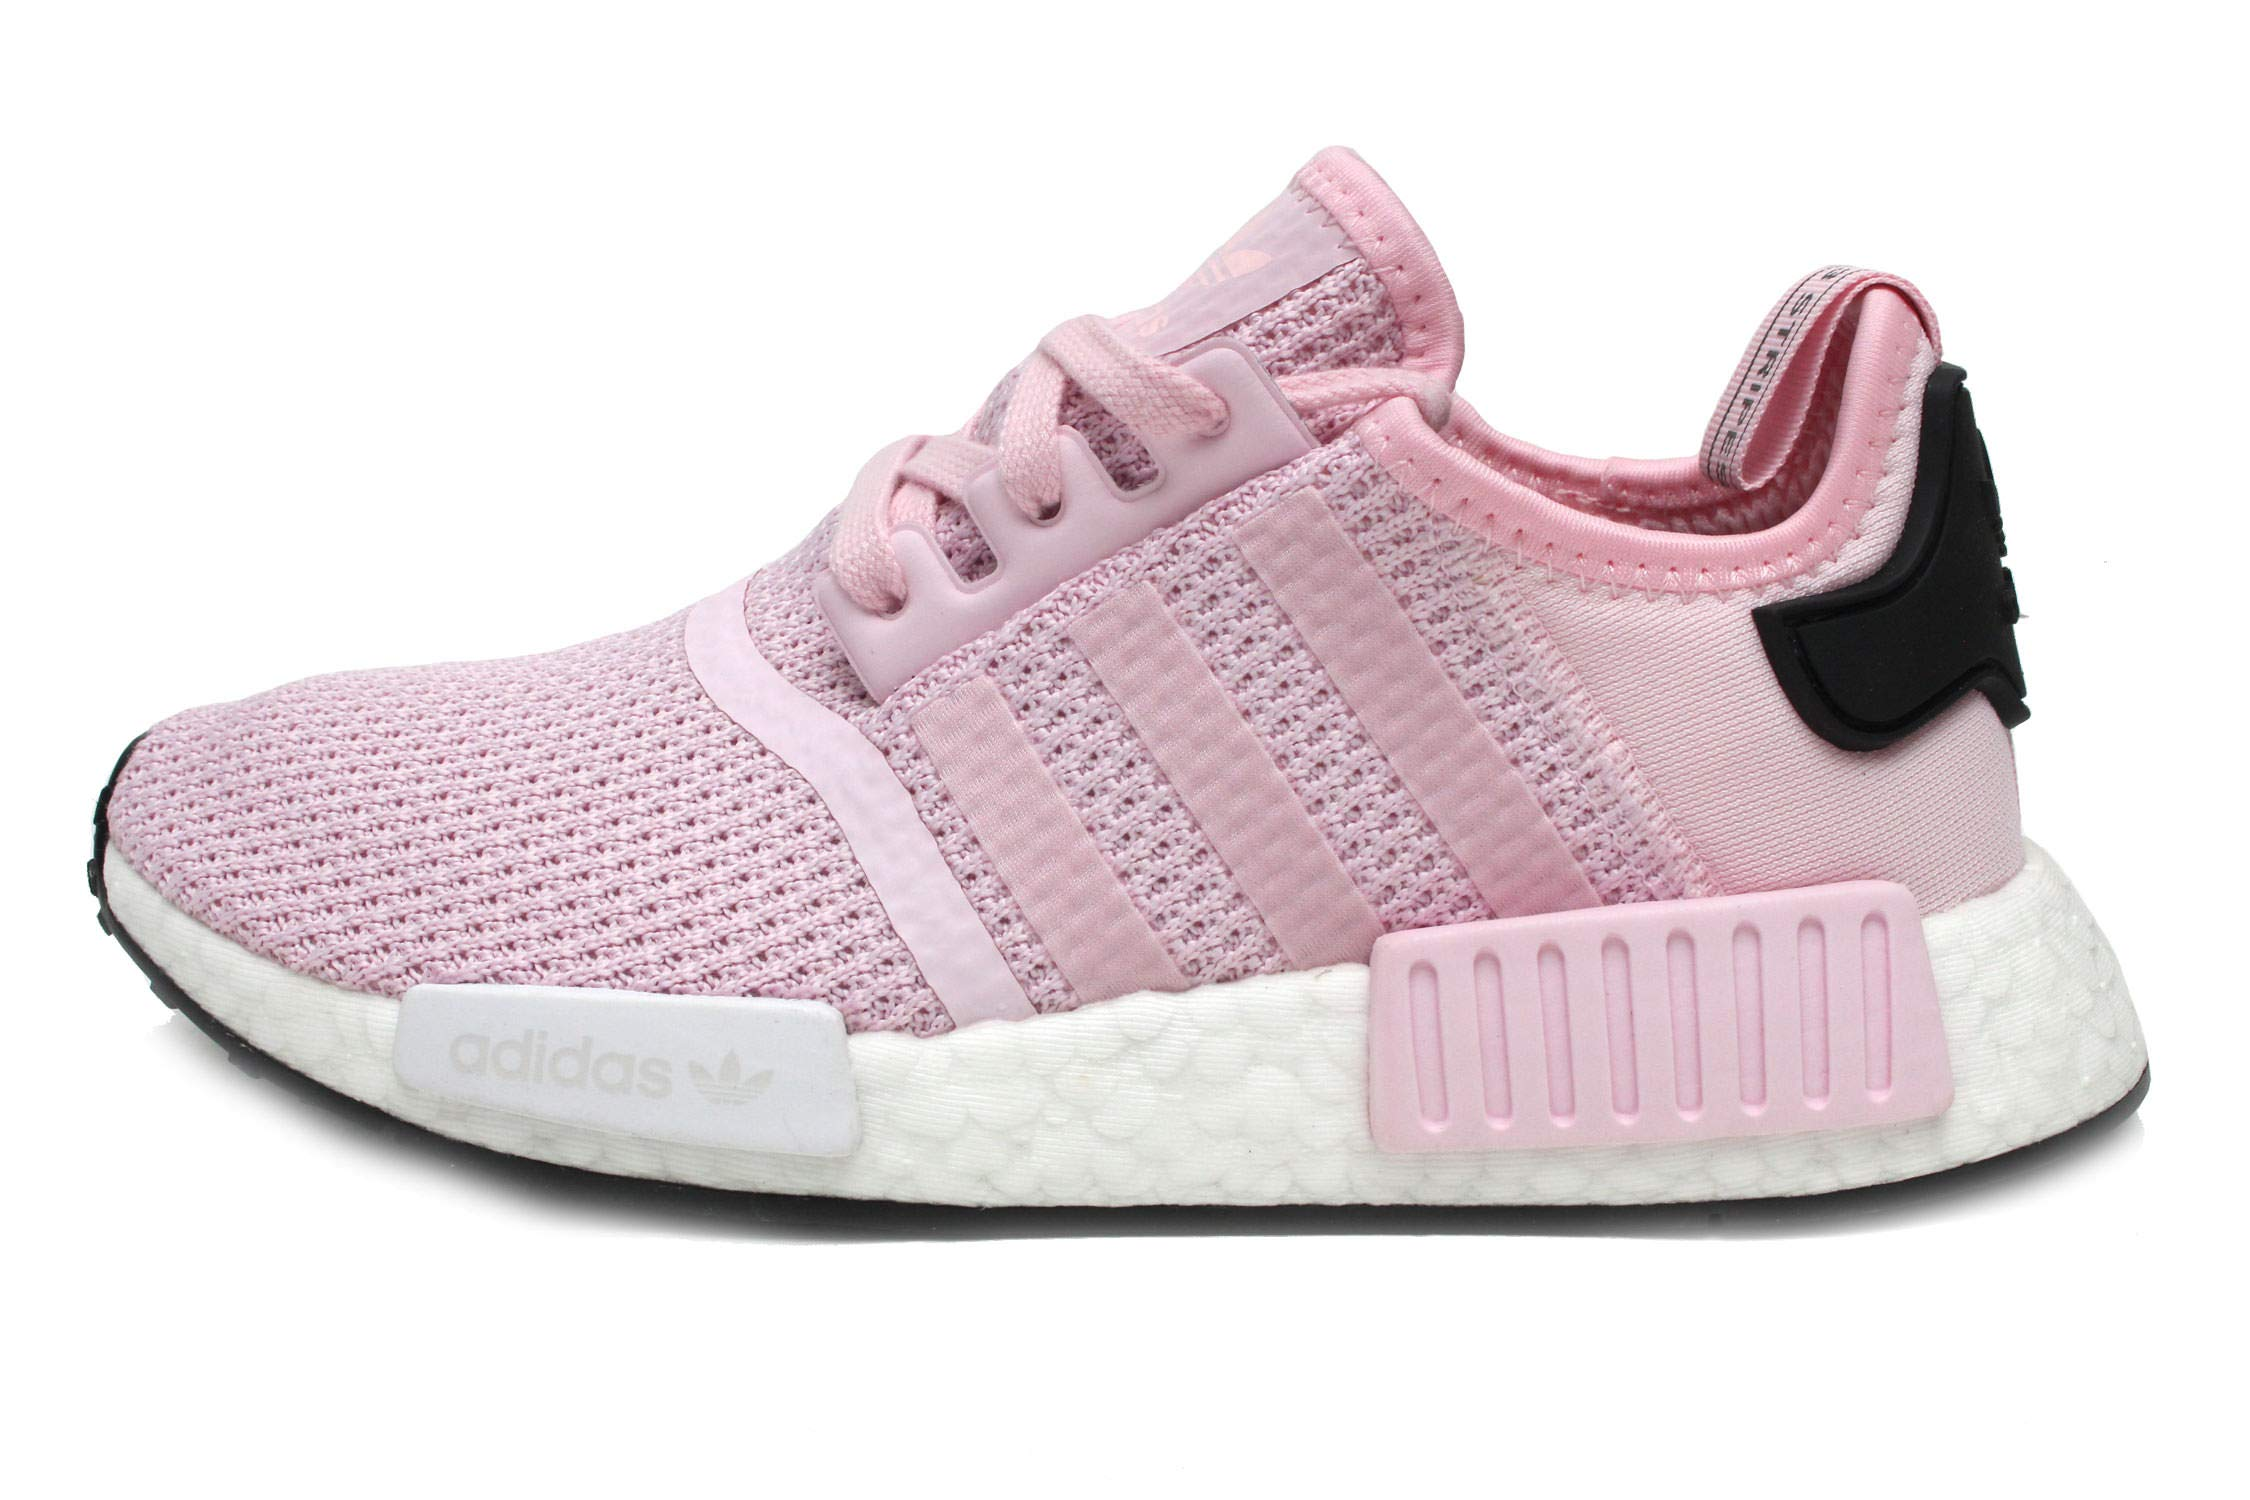 new style 6f737 b7ffc Galleon - Adidas Originals NMD R1 Shoe Women s Casual 5 Clear Pink-White -Black